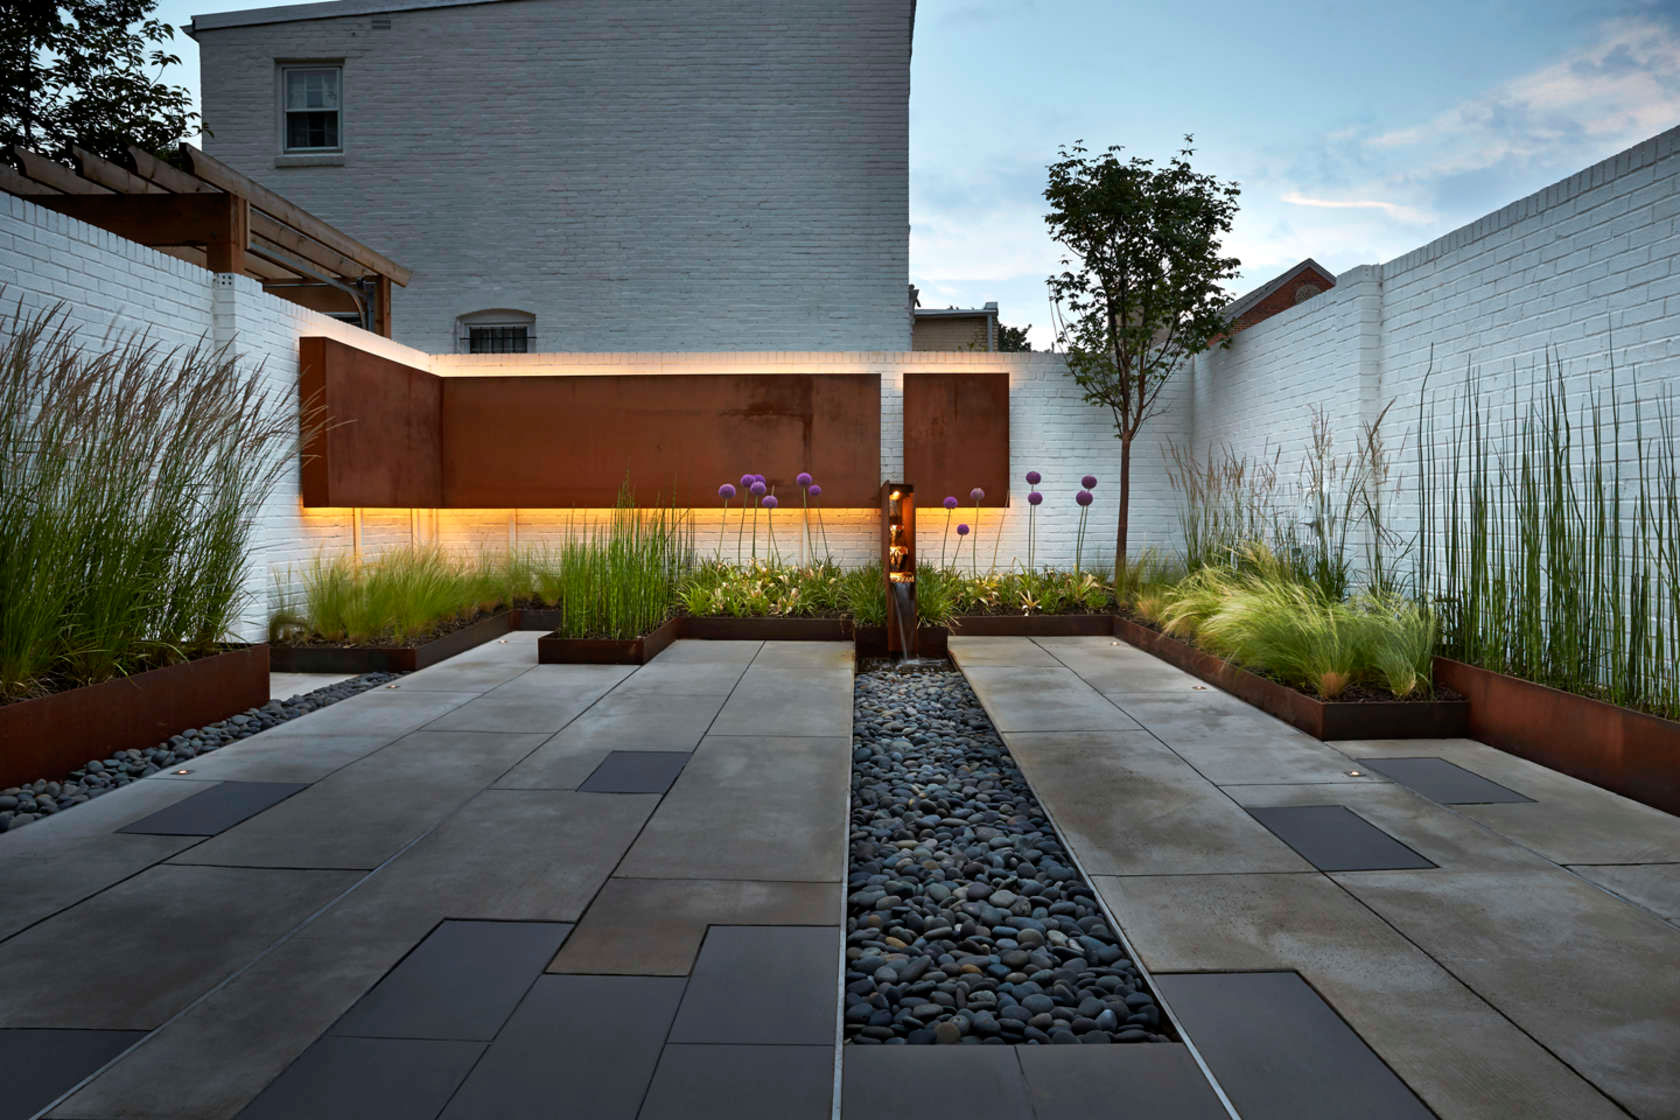 Salt and Pepper House in Washington, D.C. by KUBE Architecture-27